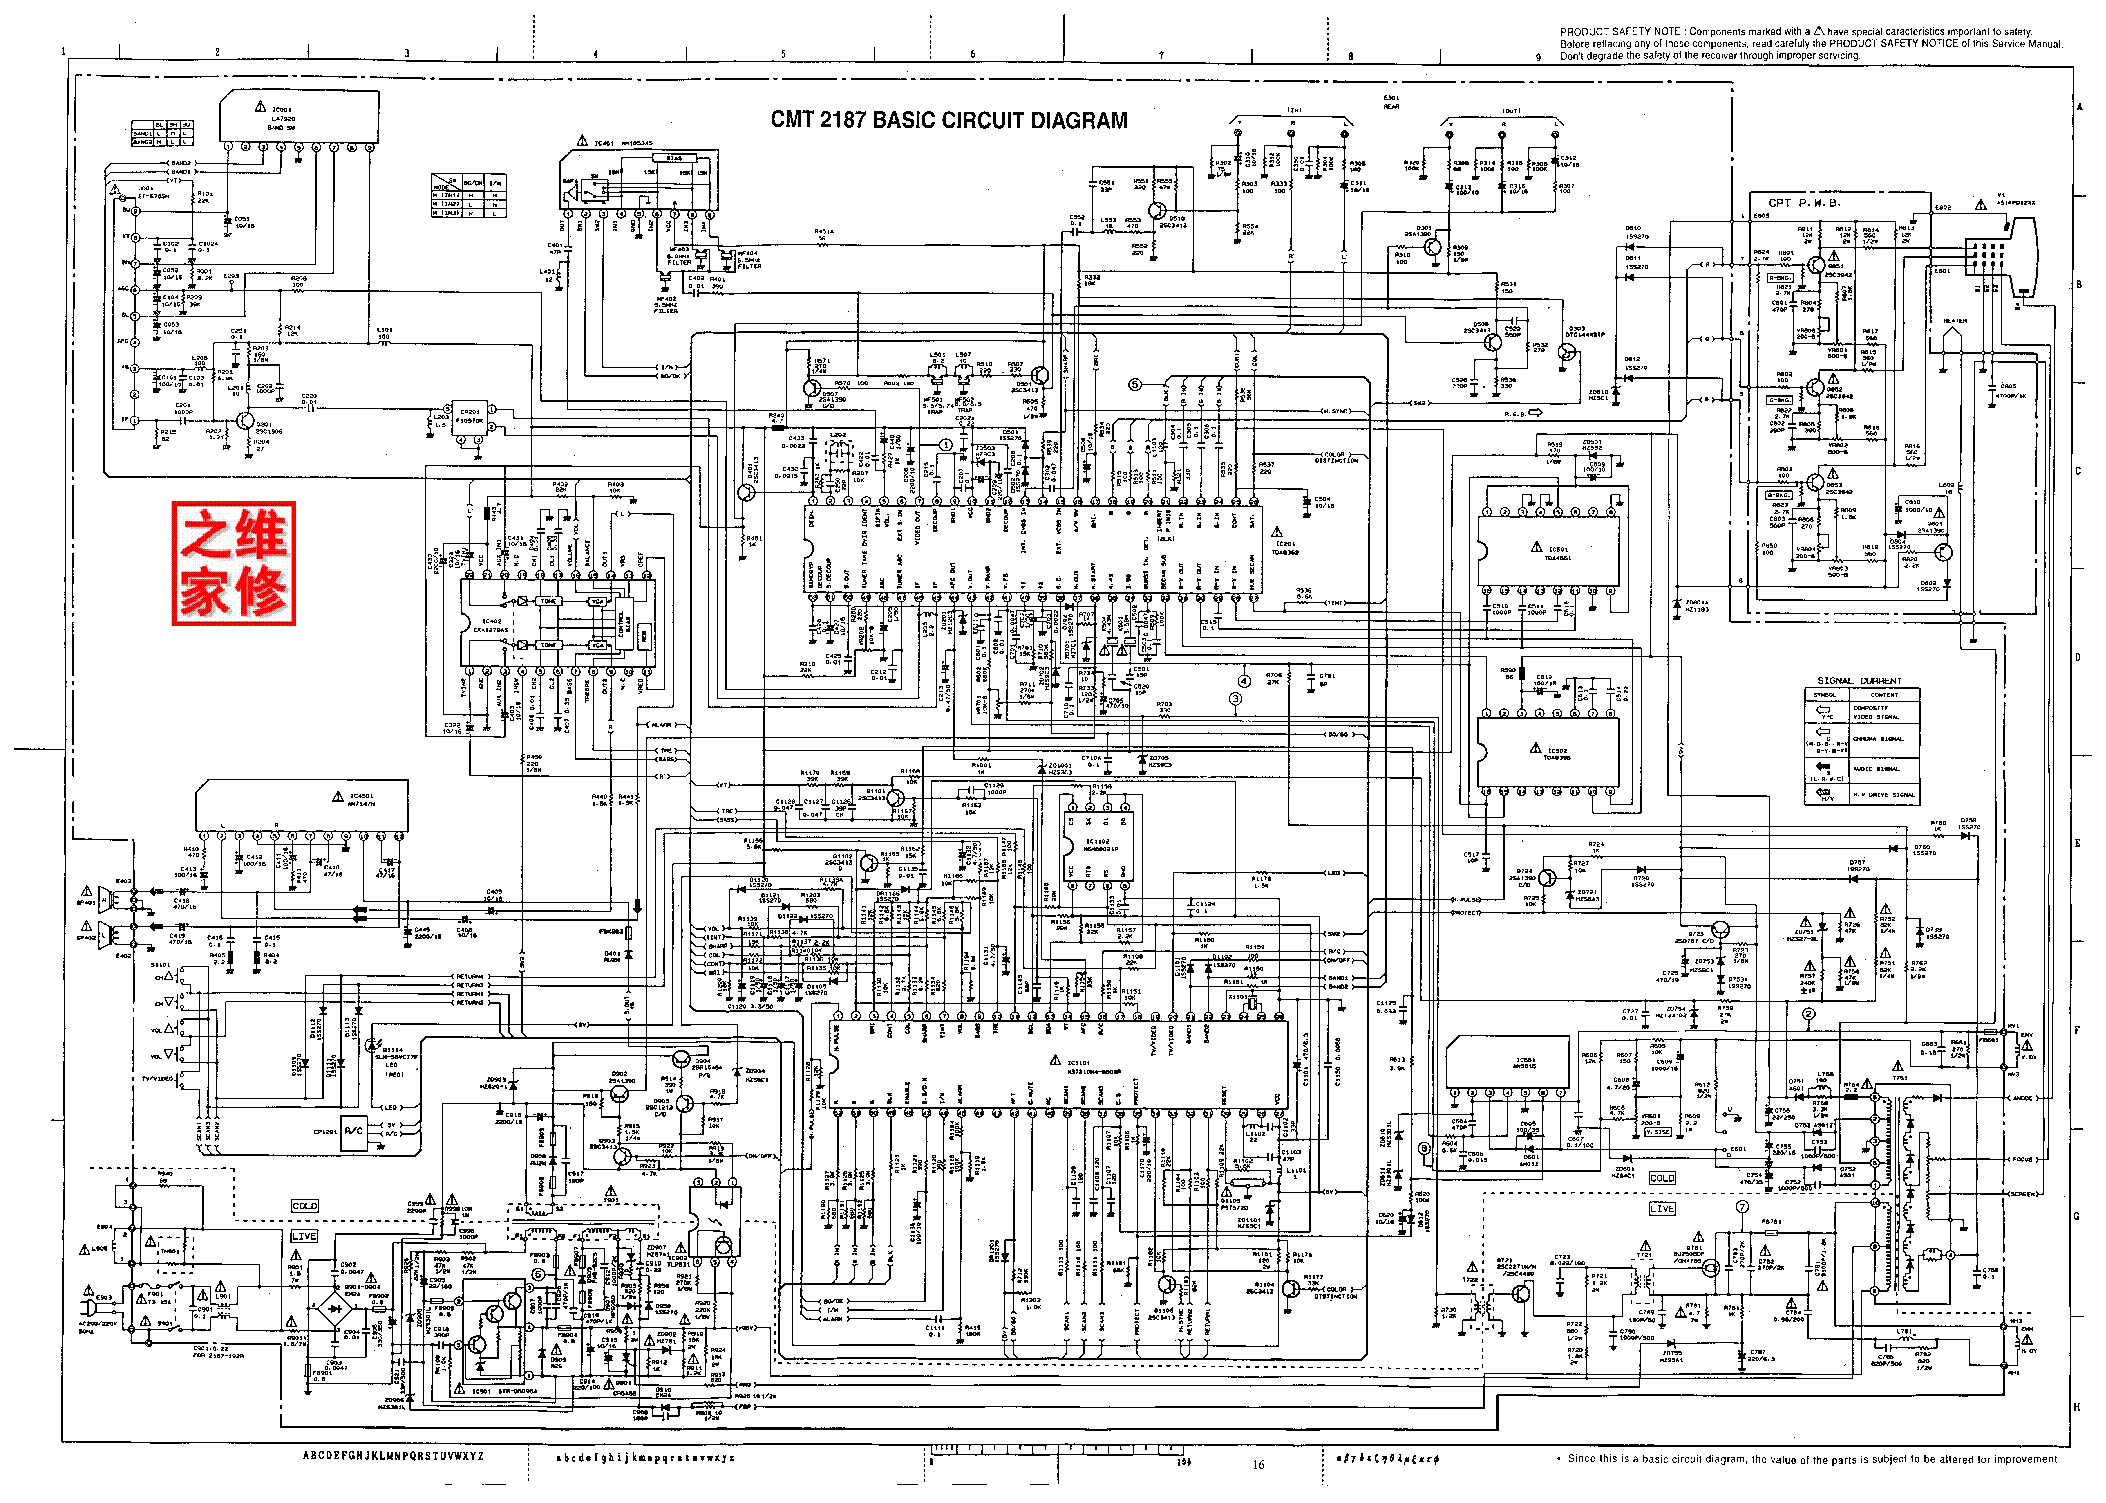 whirlpool air conditioner wiring diagram hitachi air conditioner wiring diagram hitachi cmt2187-basic-circuit-diagram-1 service manual ...